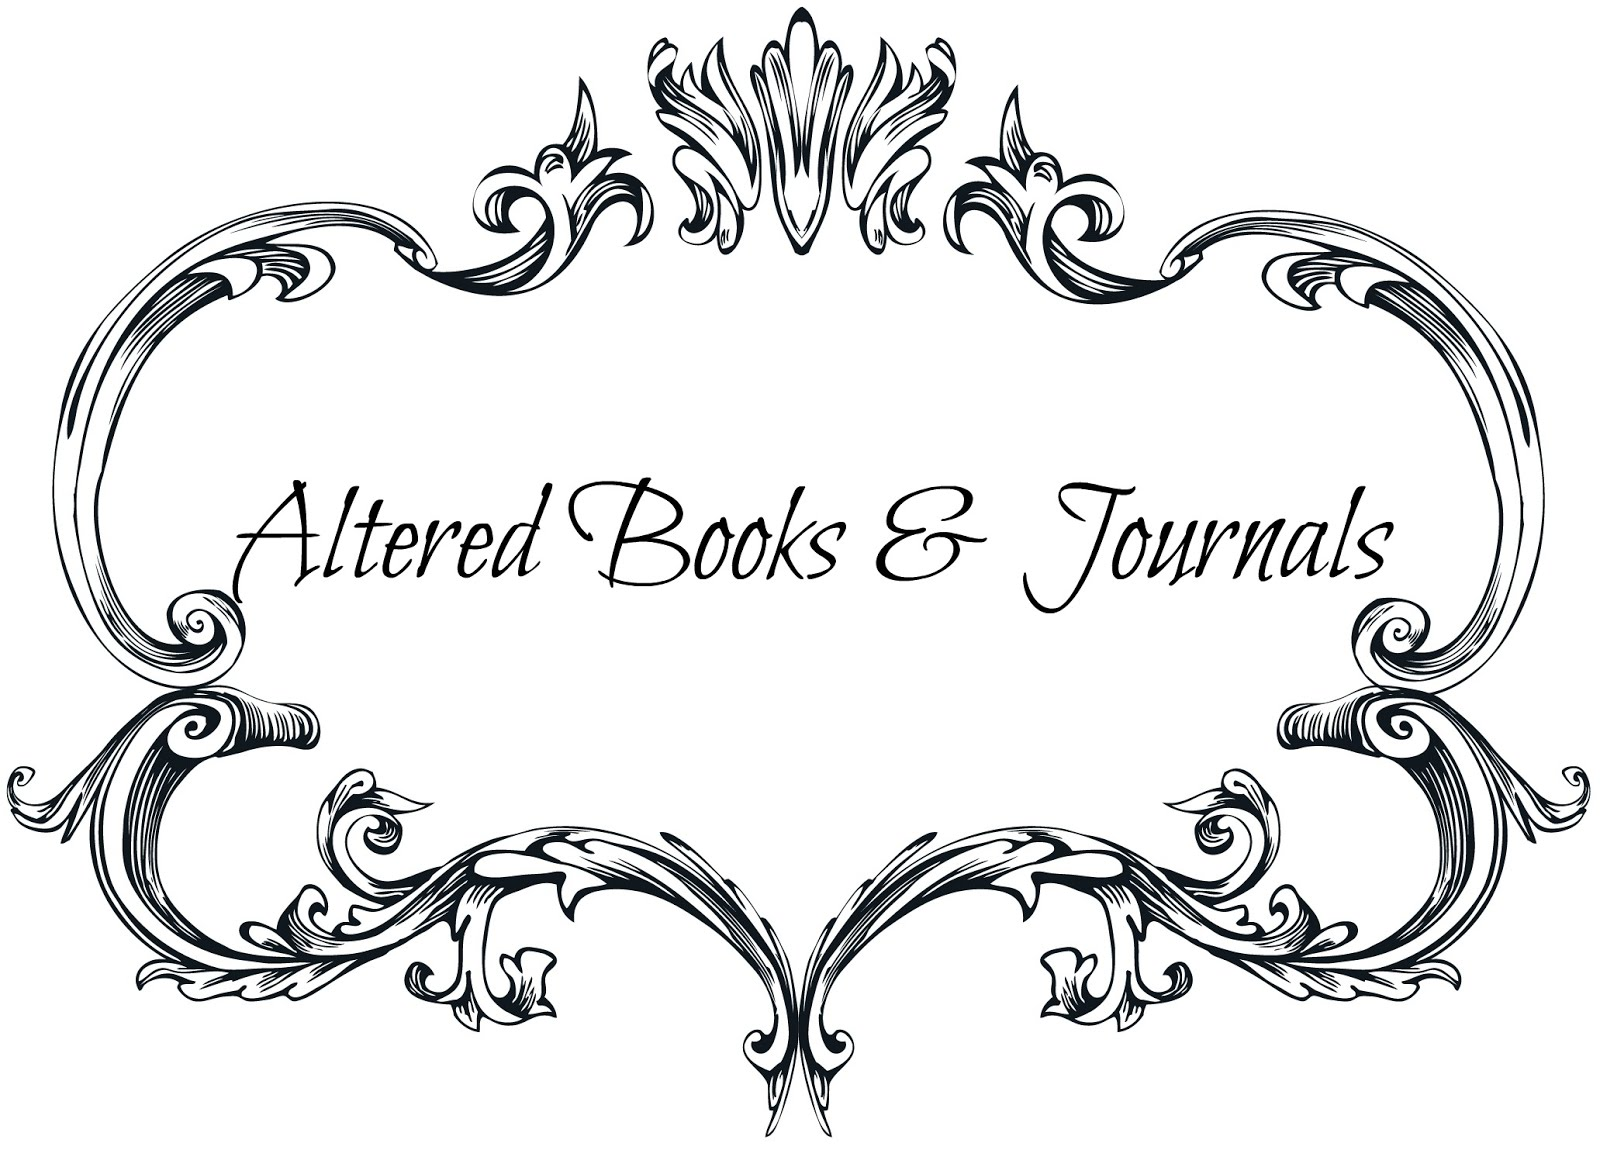 Altered Books & Journals